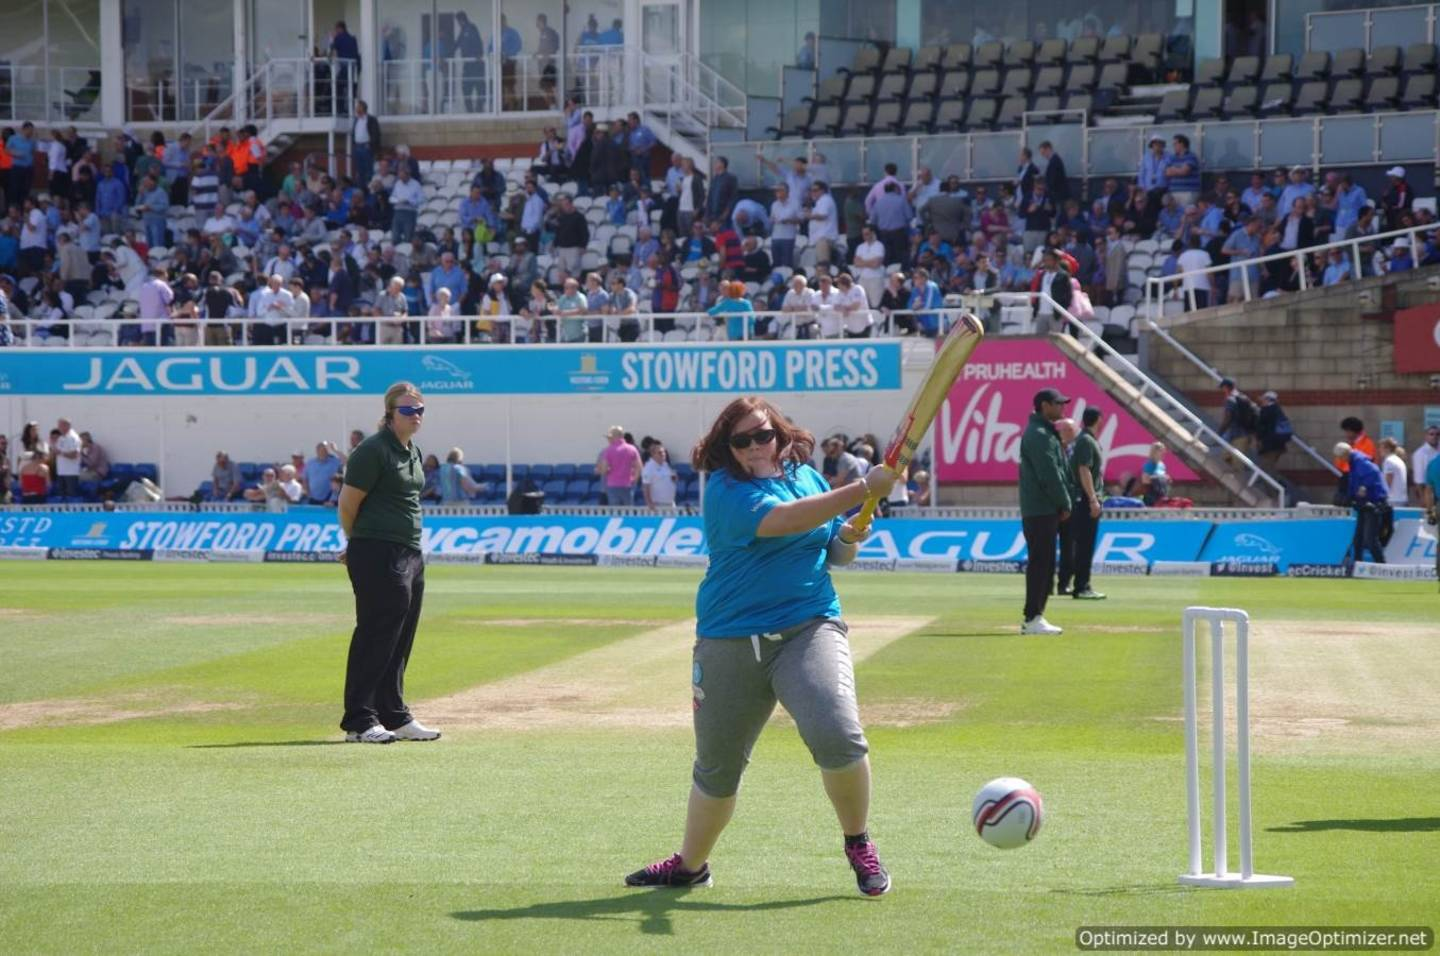 Lois batting during a game of visually-impaired cricket